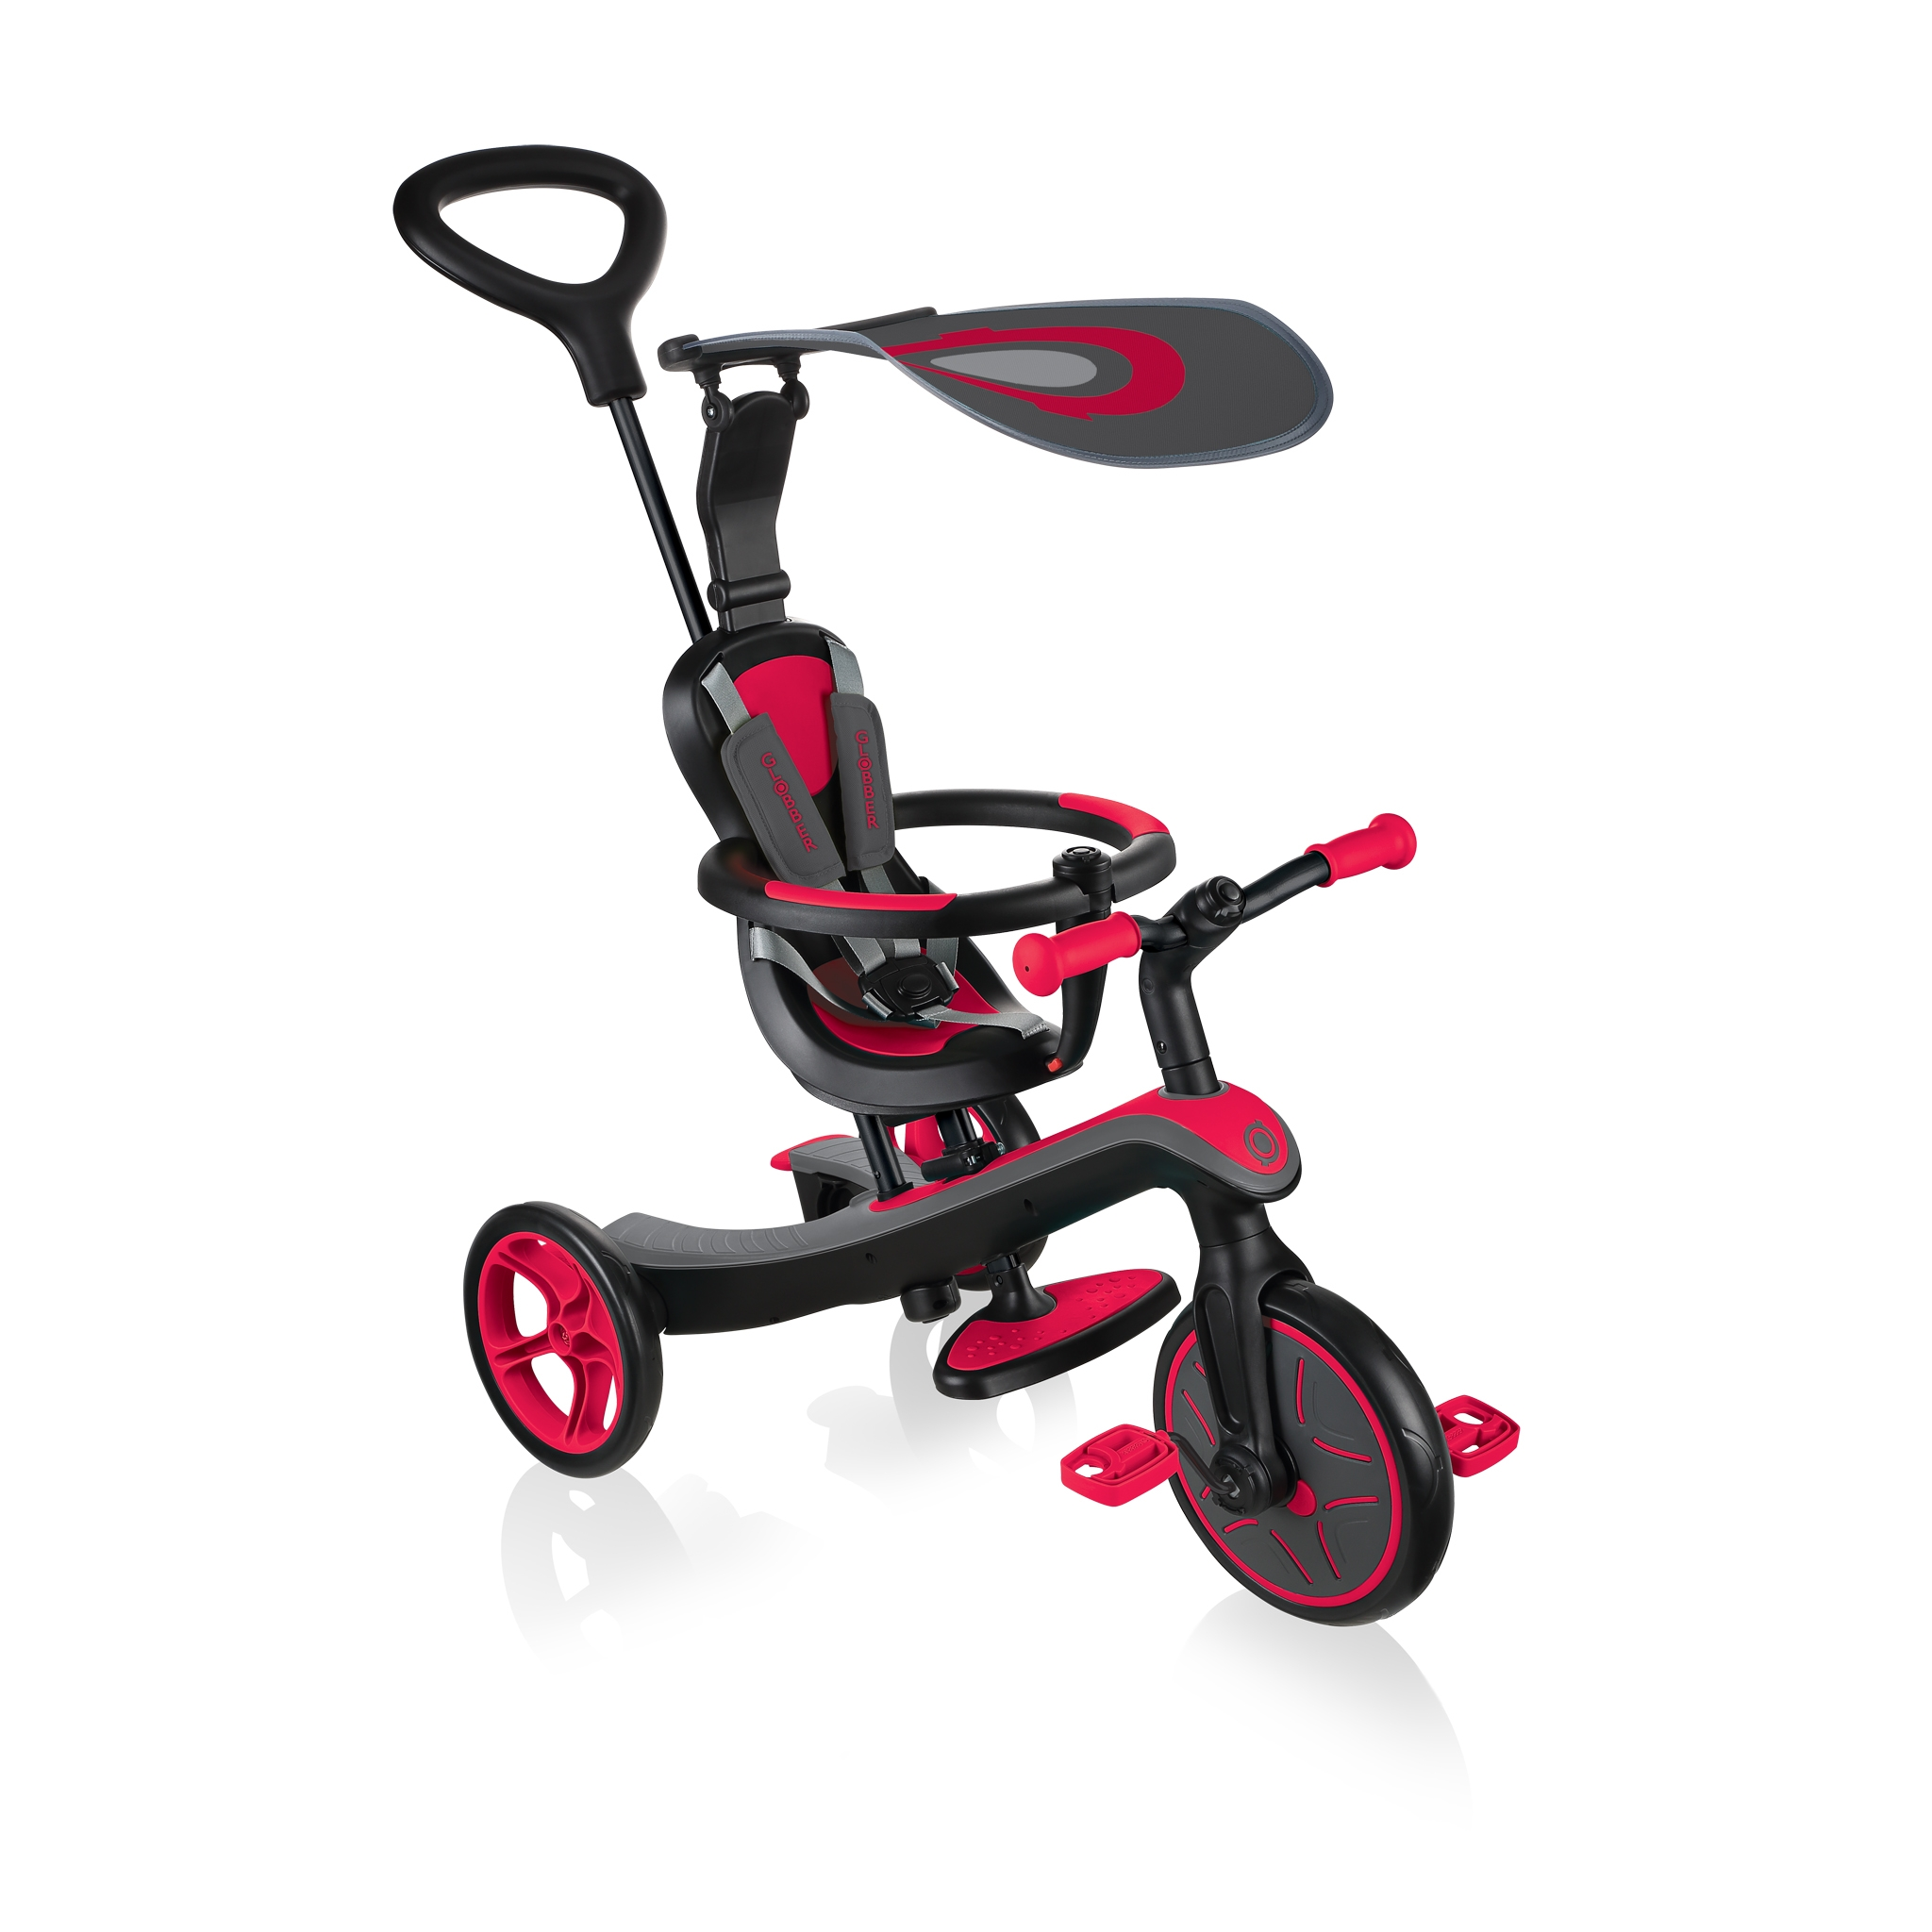 Globber-EXPLORER-TRIKE-4in1-all-in-one-baby-tricycle-and-kids-balance-bike-stage1-infant-trike_new-red